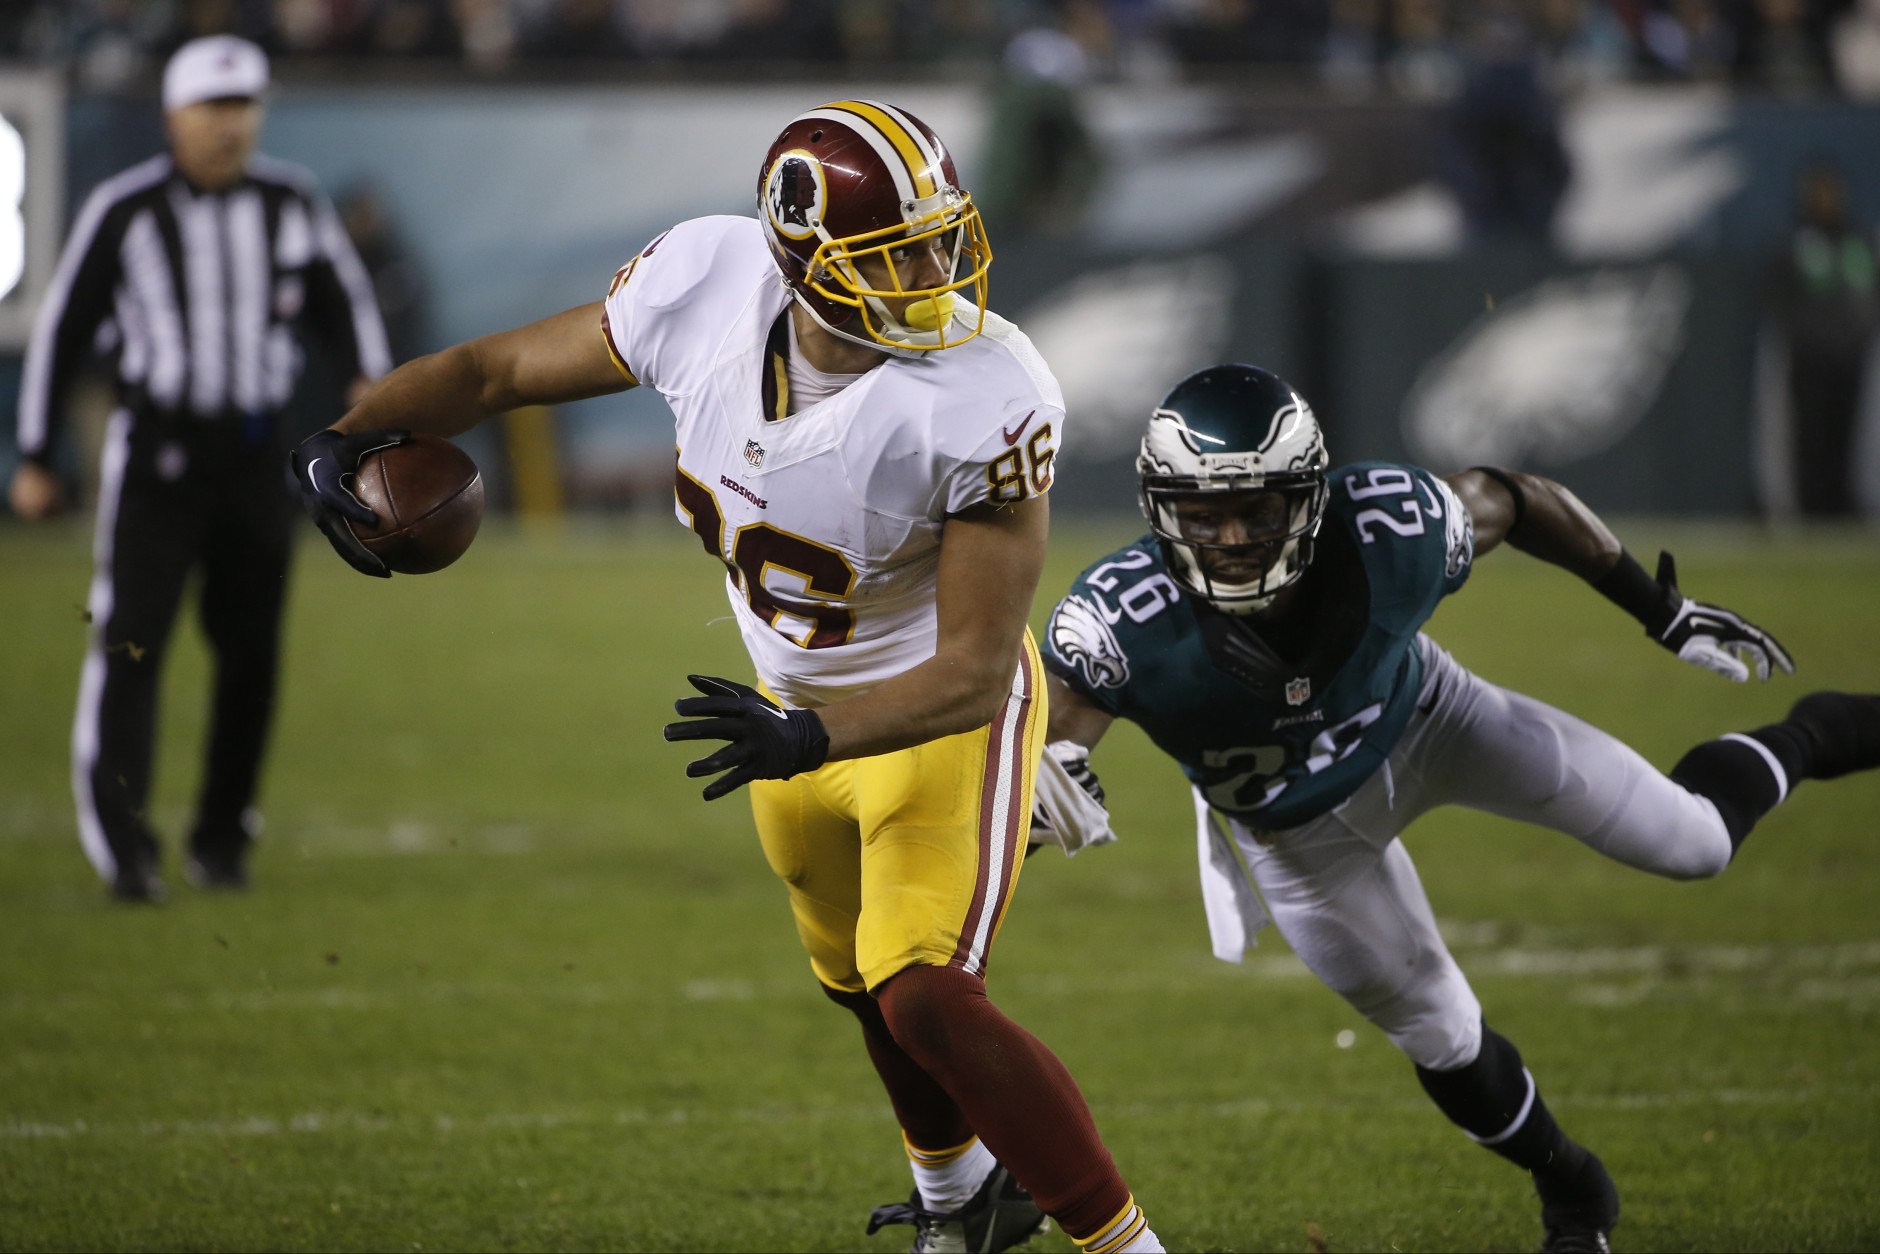 Washington Redskins' Jordan Reed, left, tries to break a tackle by Philadelphia Eagles' Walter Thurmond in the second half of an NFL football game, Saturday, Dec. 26, 2015, in Philadelphia.  (AP Photo/Matt Rourke)